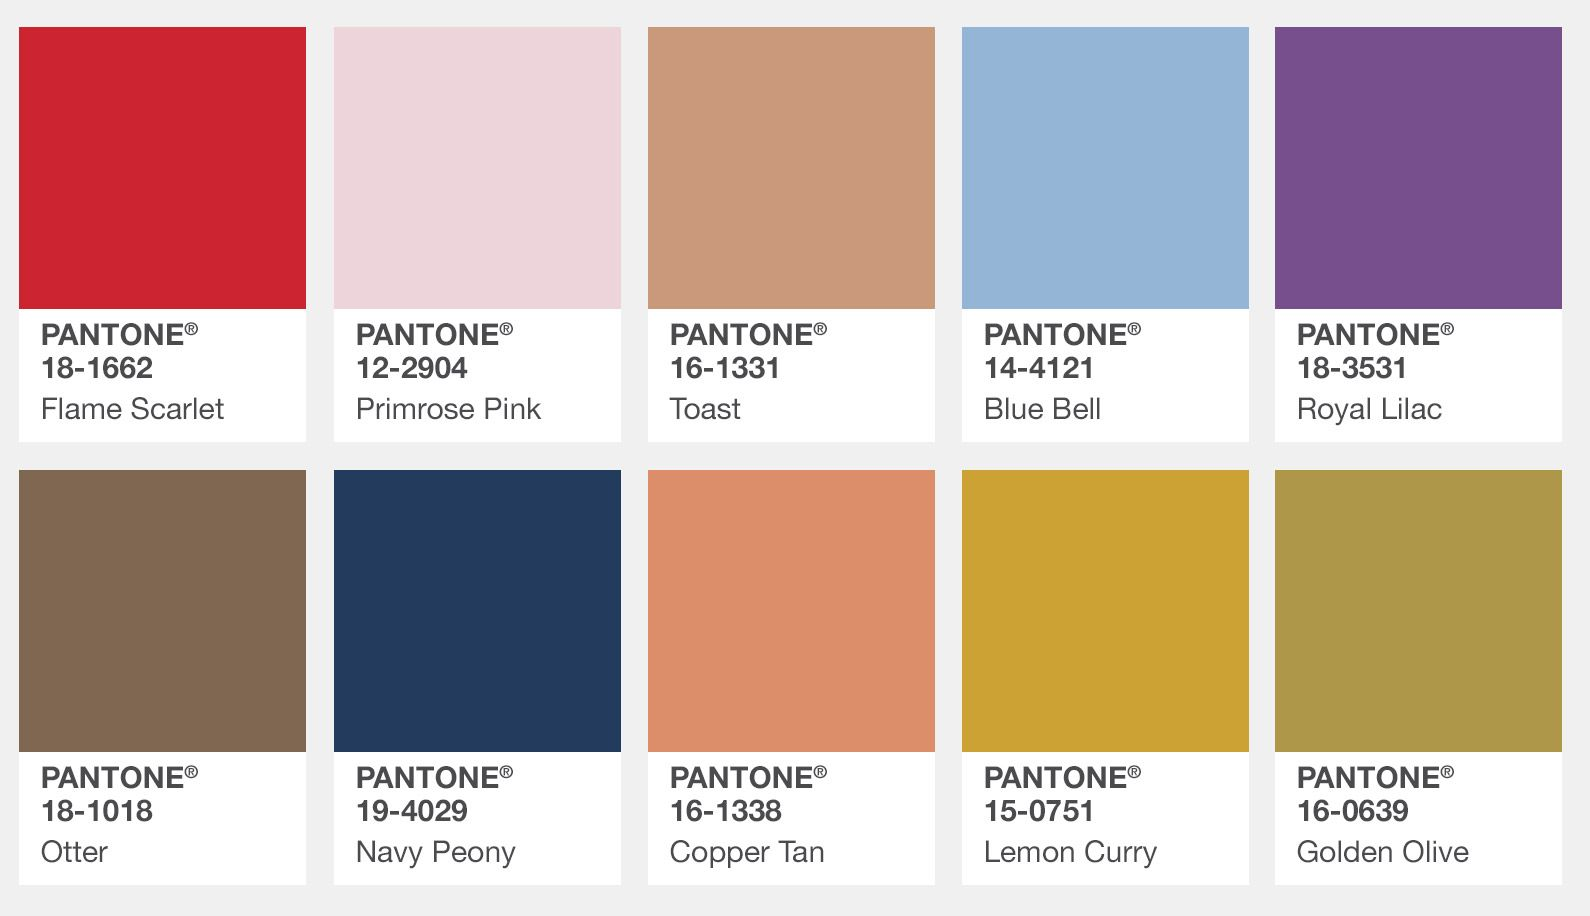 pantone herbst trendfarben 2017 pantone farben pinterest farben pantone. Black Bedroom Furniture Sets. Home Design Ideas